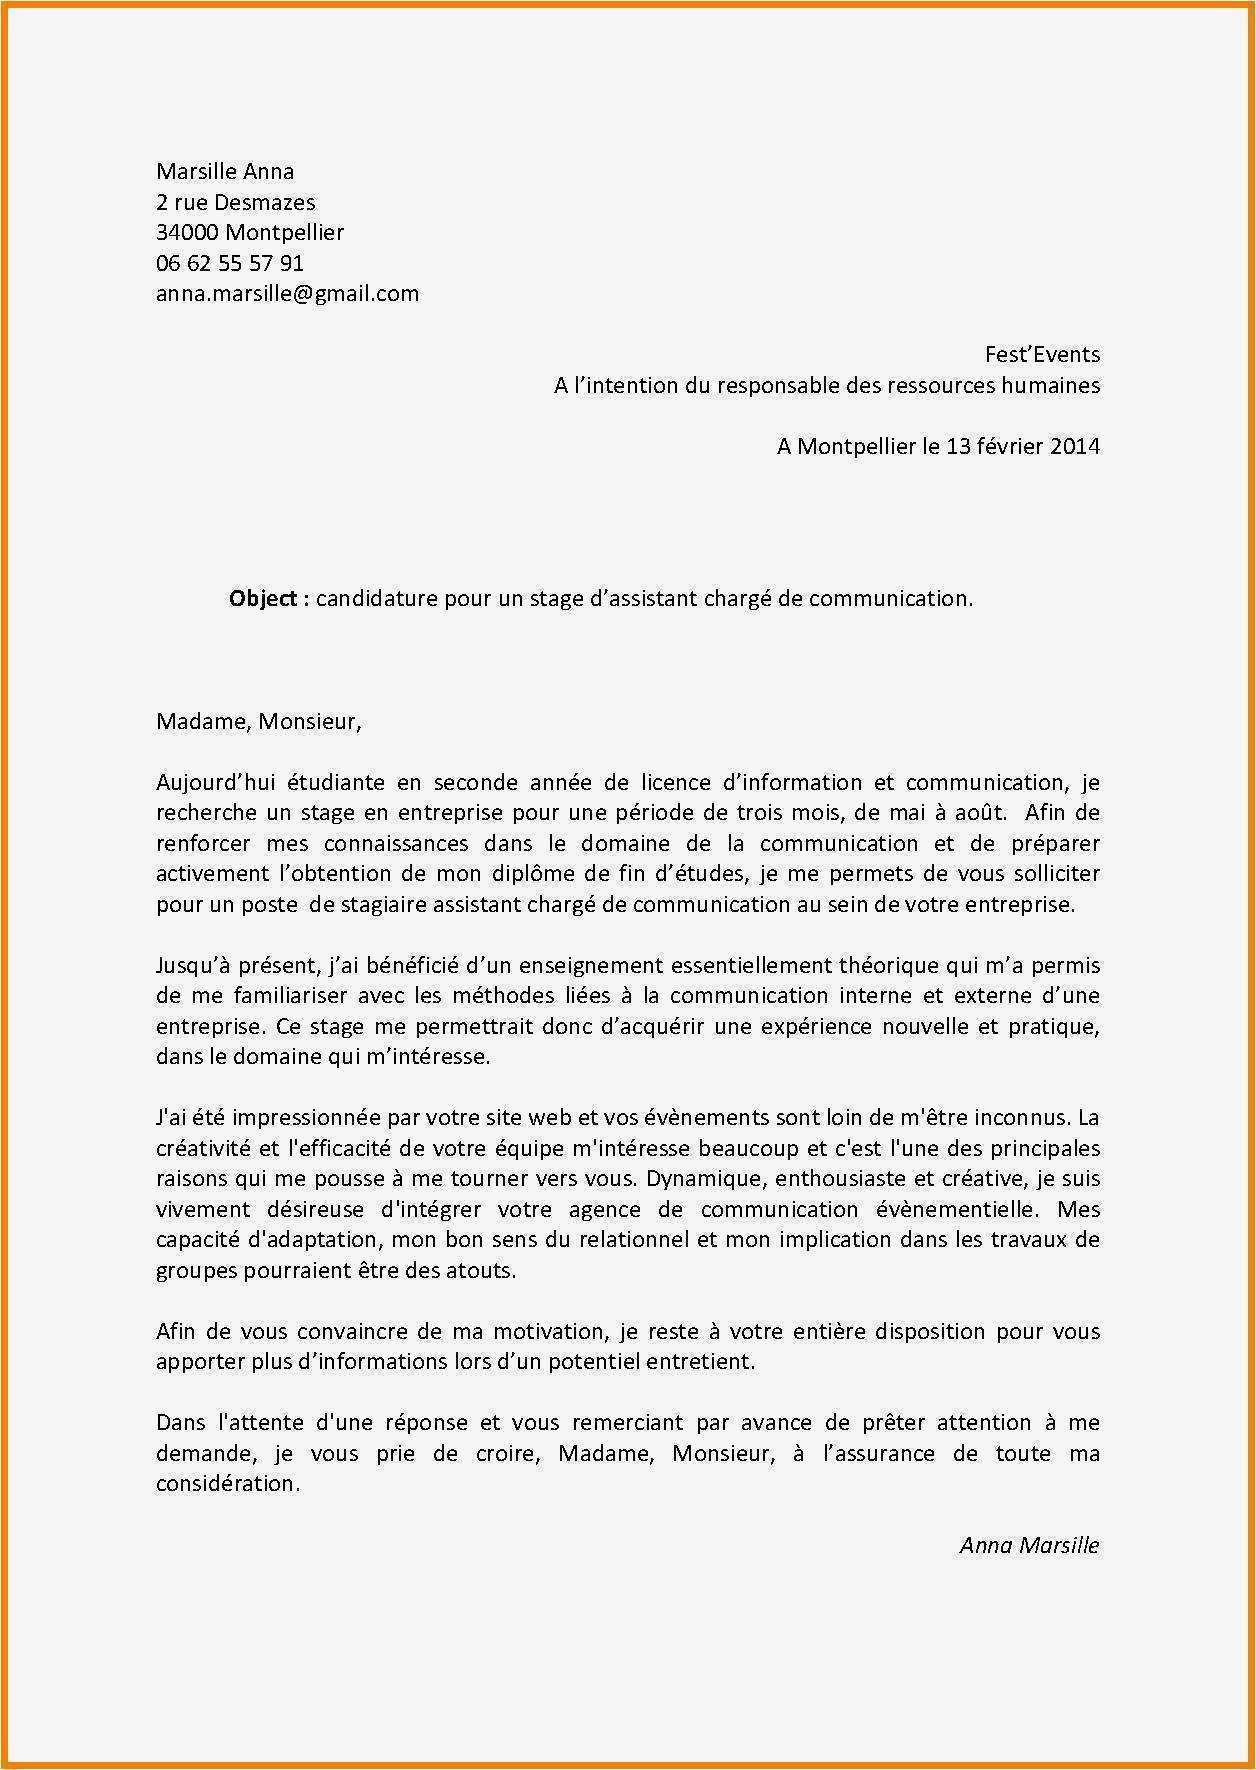 Lettre De Contestation D Amende Exemple De Jeu De Mots Archives Roadcon Co Nouvelle Exemple De